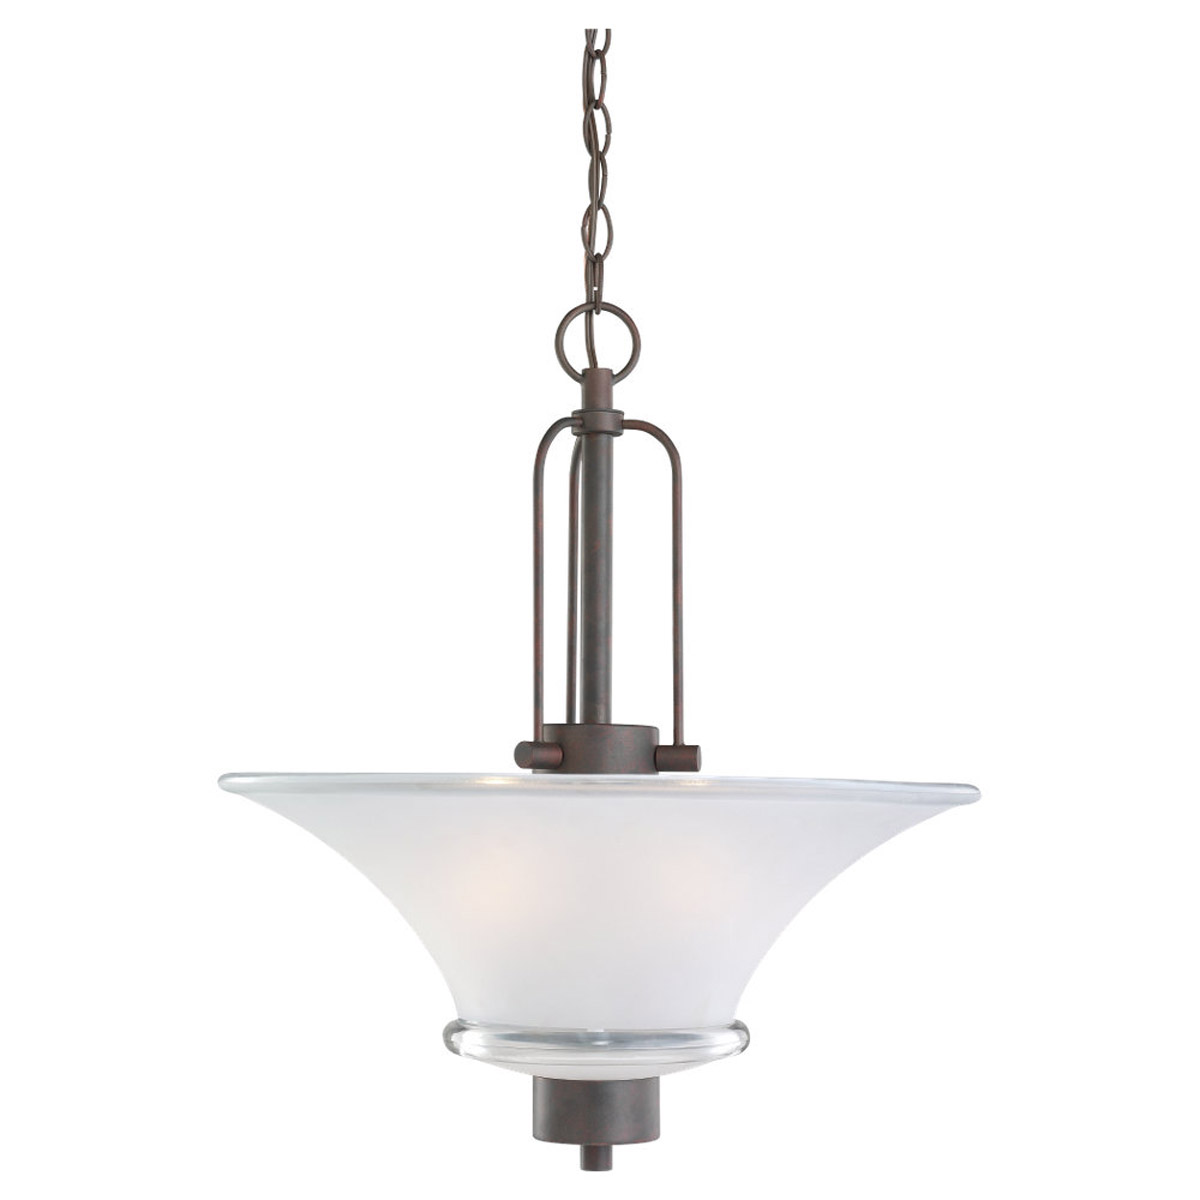 Sea Gull Lighting Newport 2 Light Pendant in Misted Bronze 65284-814 photo